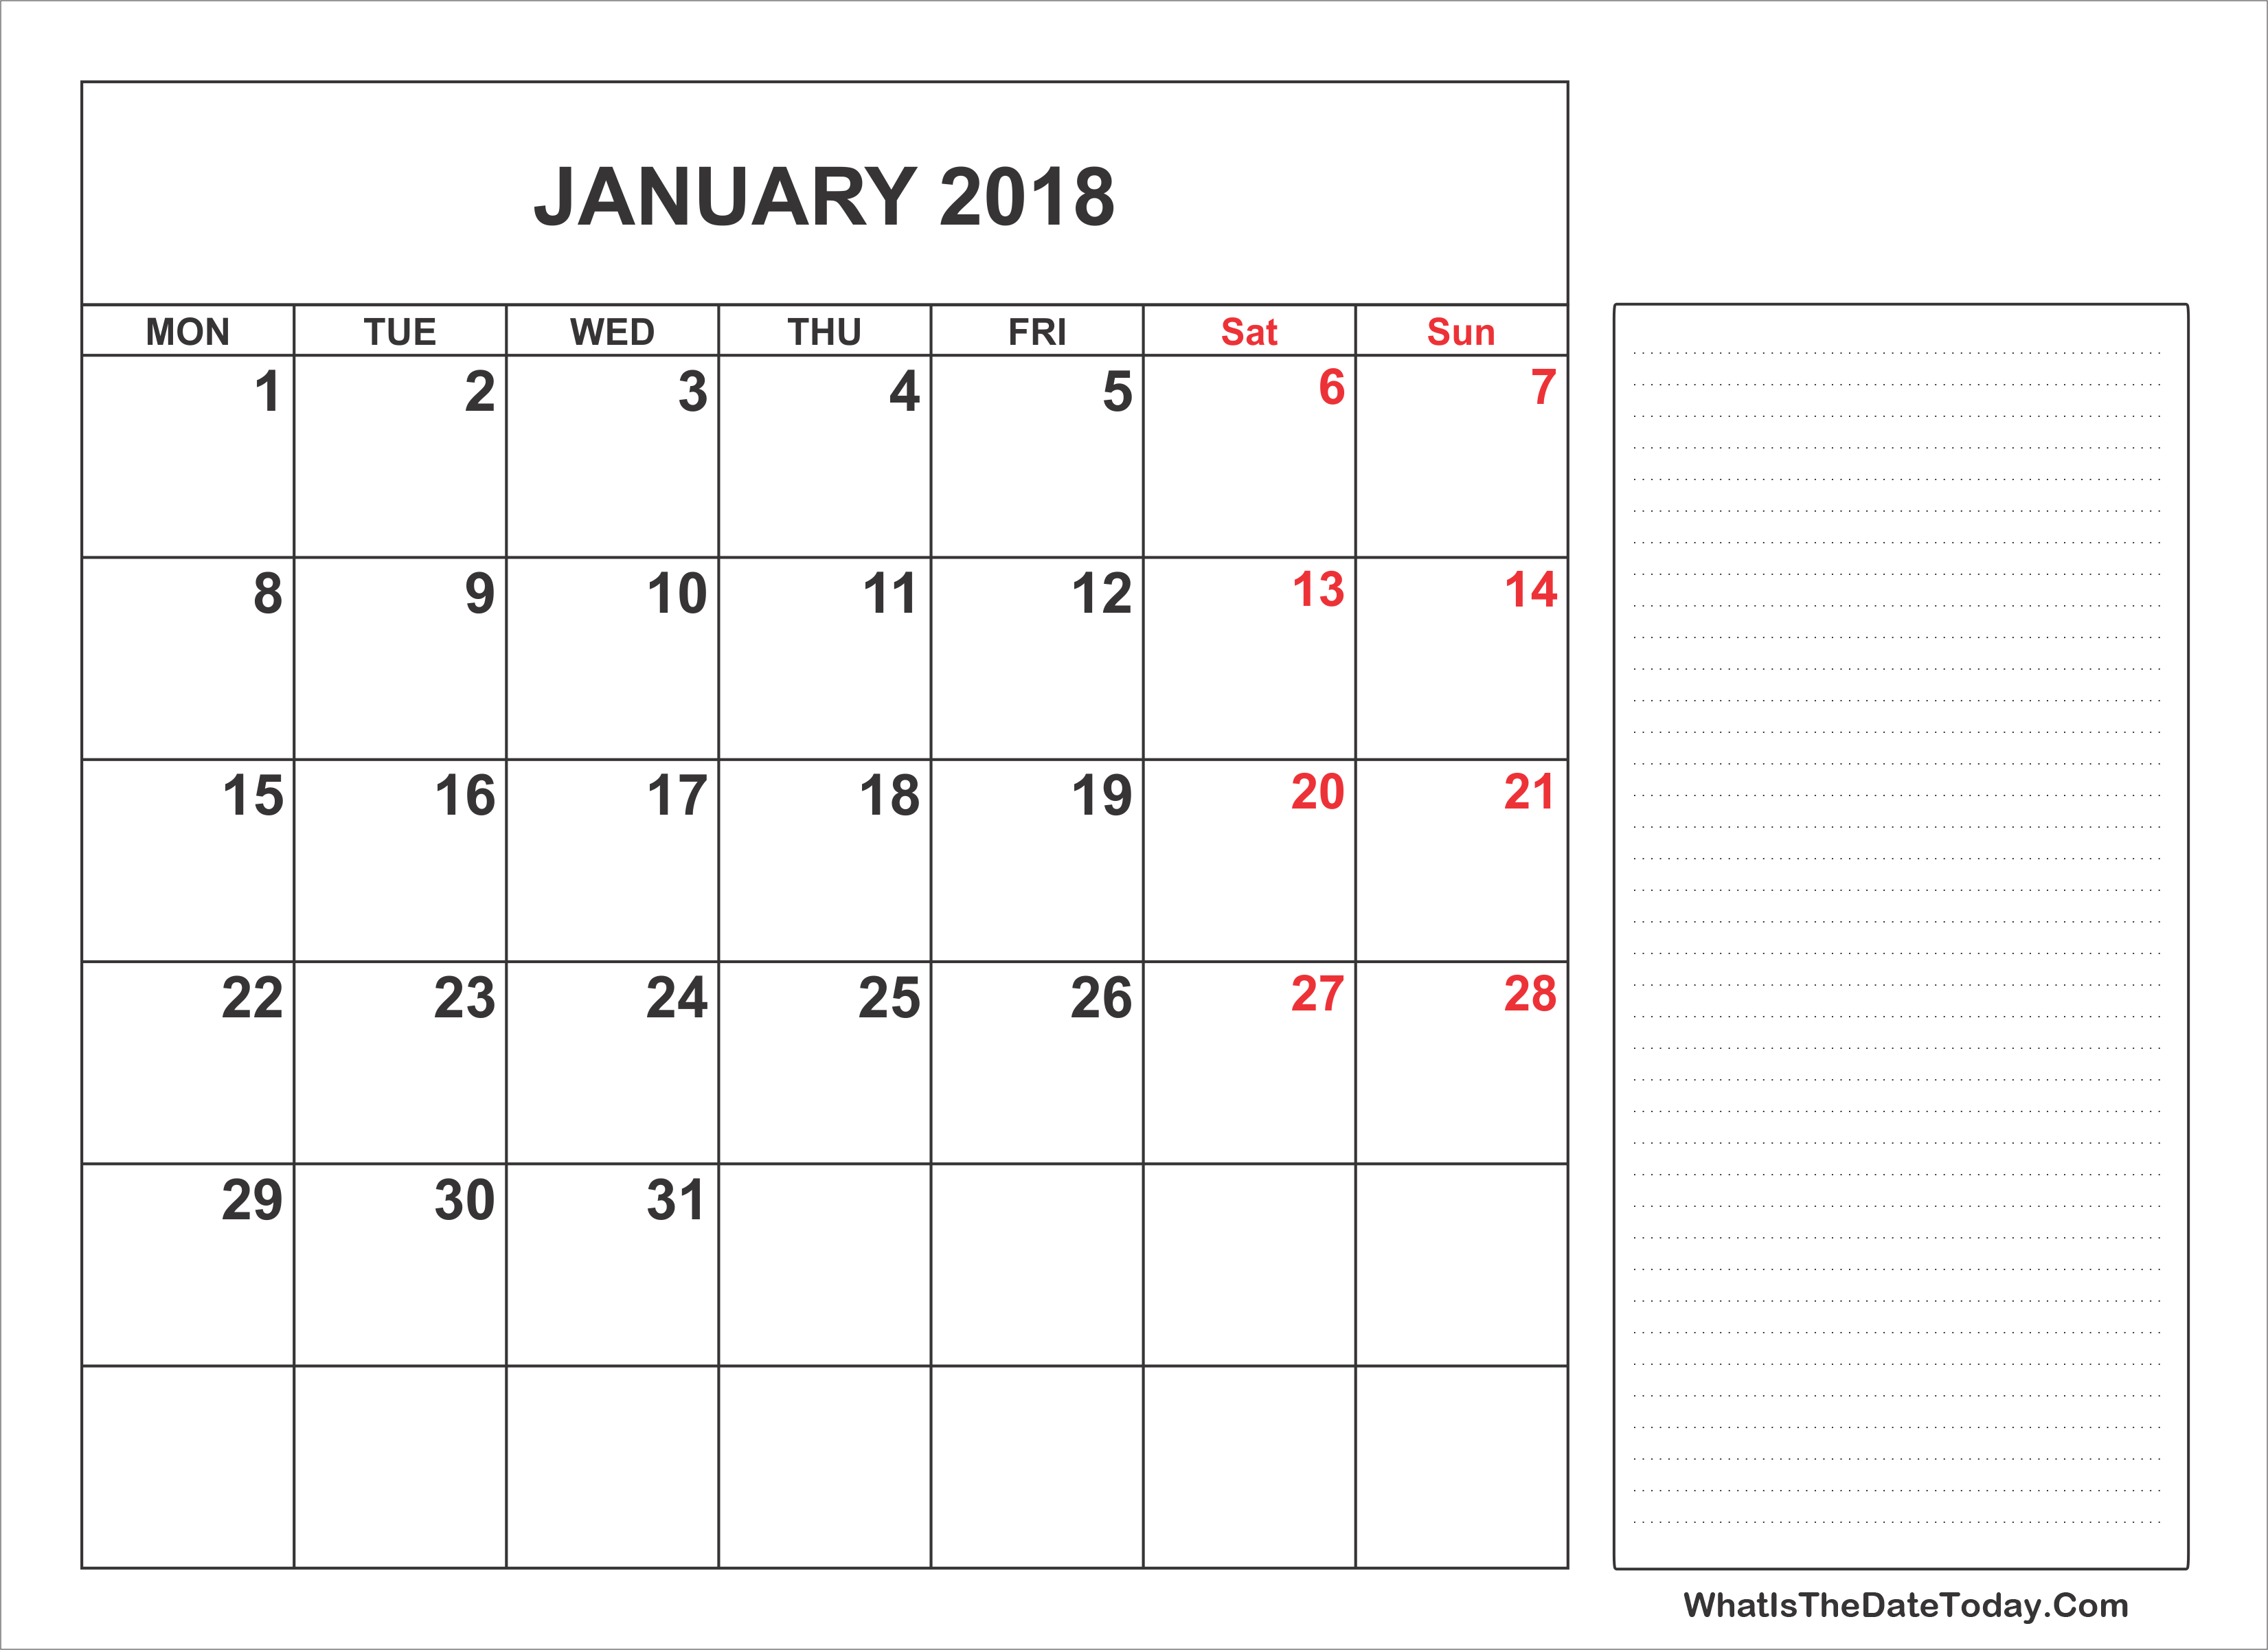 2018 Printable January Calendar With Notes Whatisthedatetoday Com